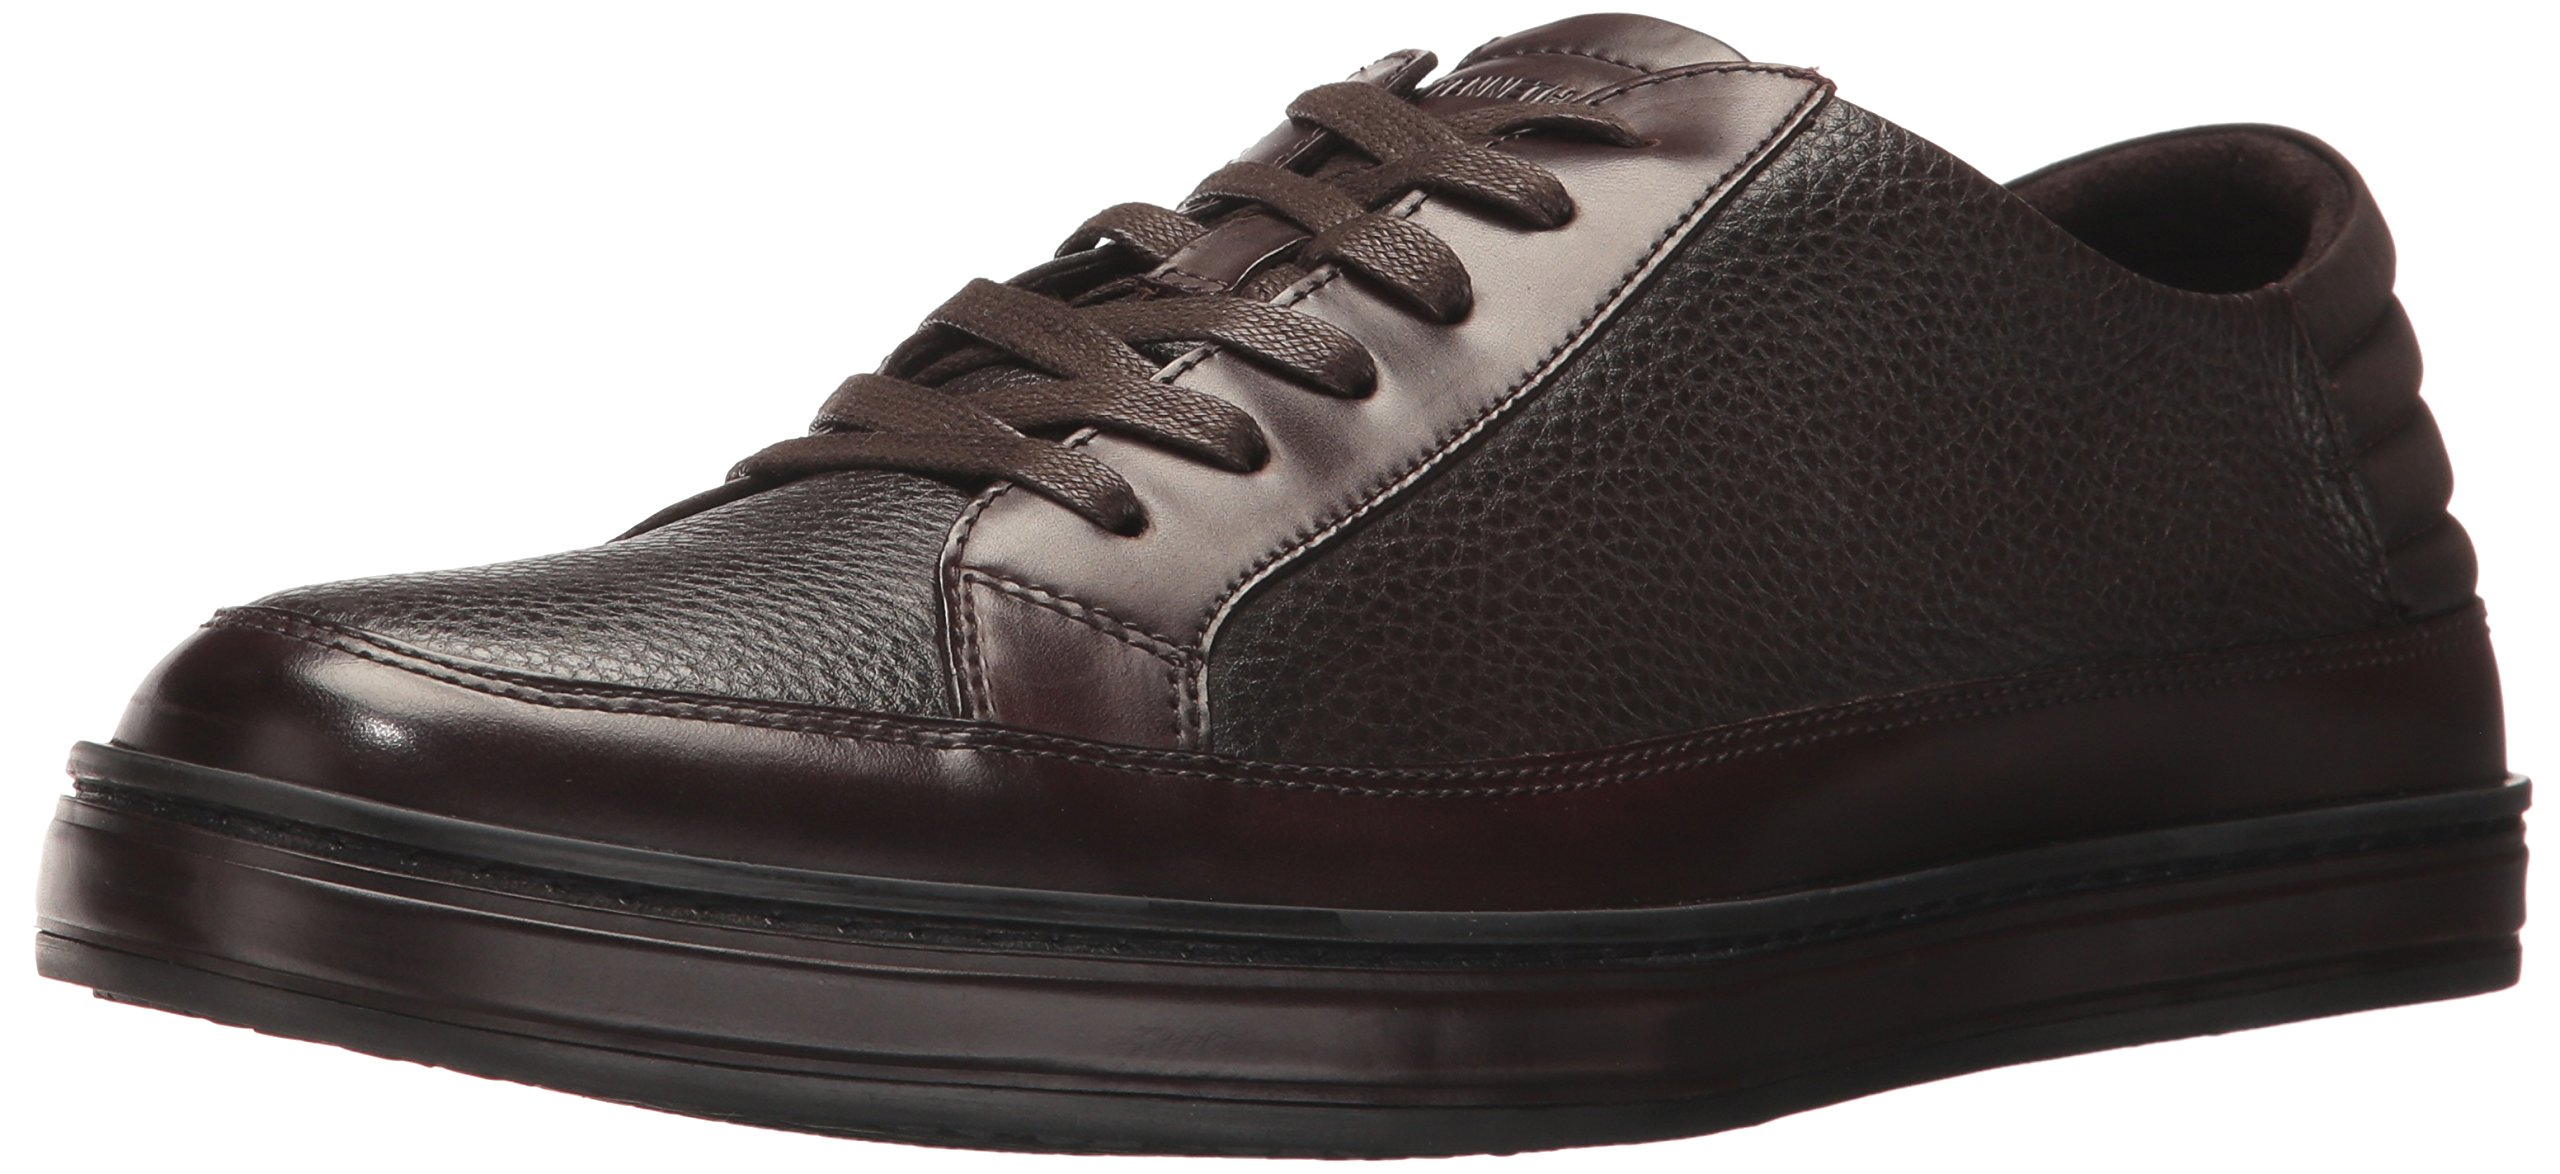 Kenneth Cole New York Men's Brand Stand Sneaker, Brown, 8 M US